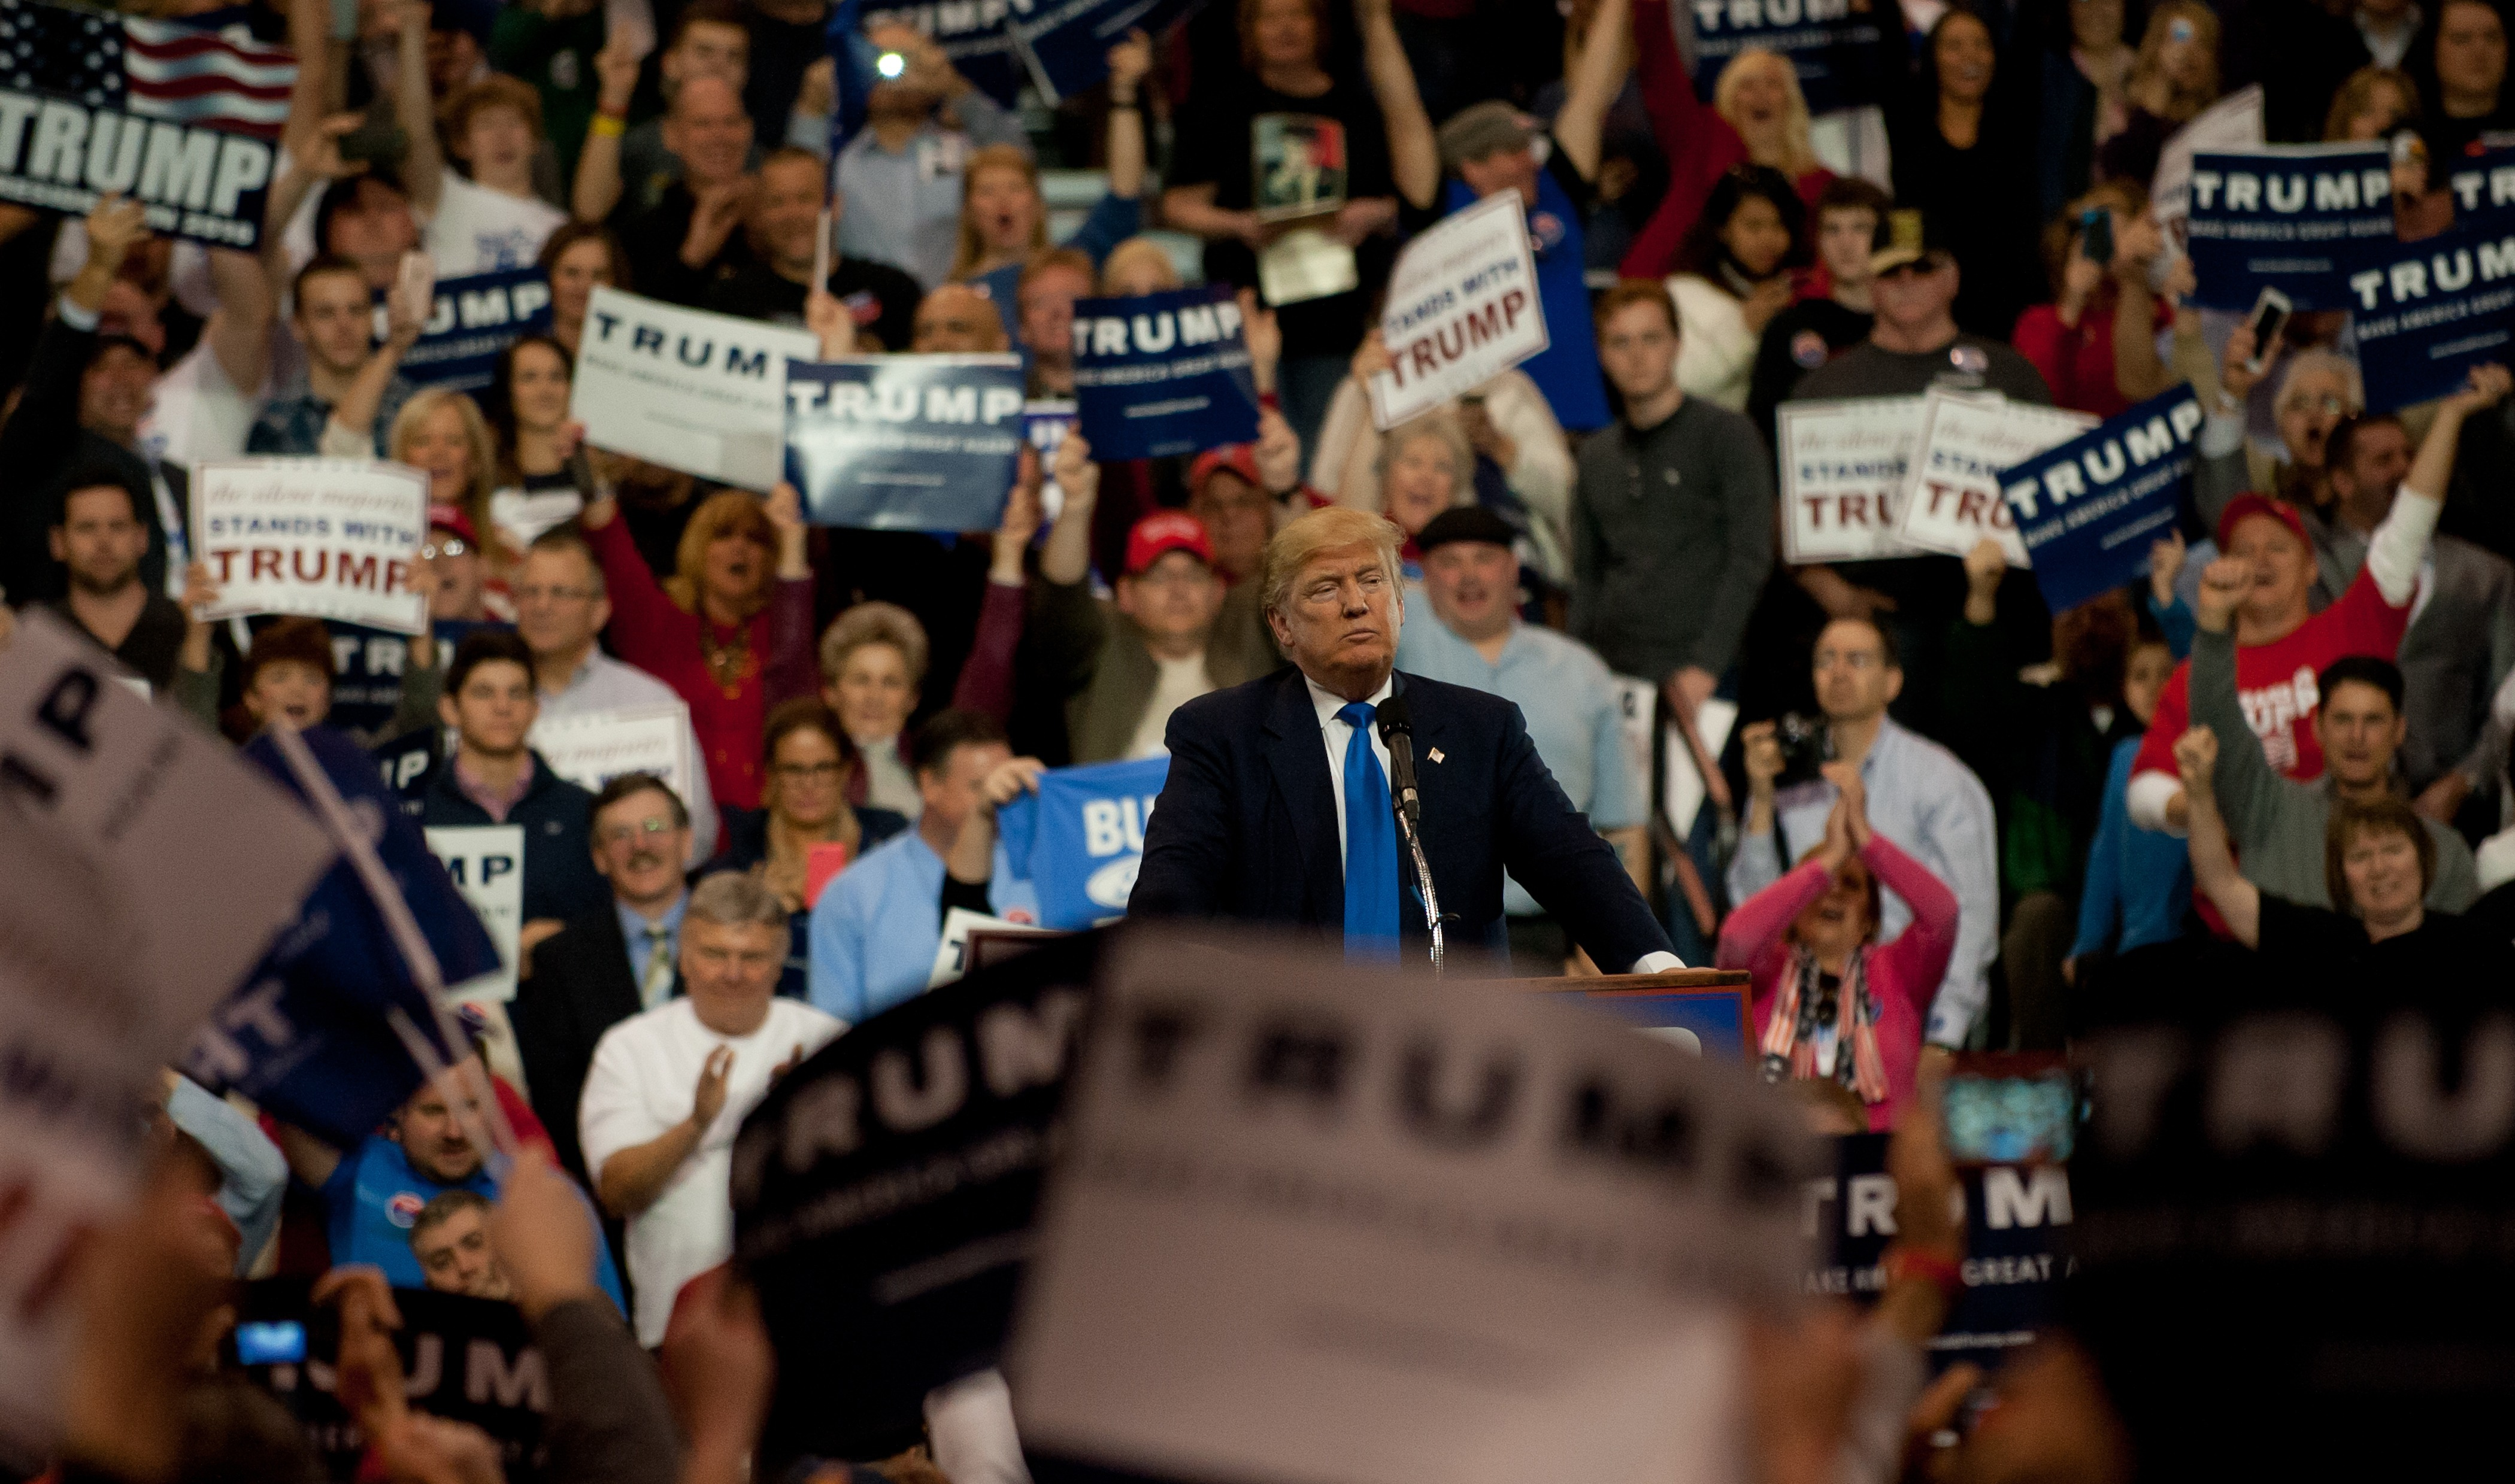 GOP Candidate Presidential Donald Trump Holds Rally In Cleveland